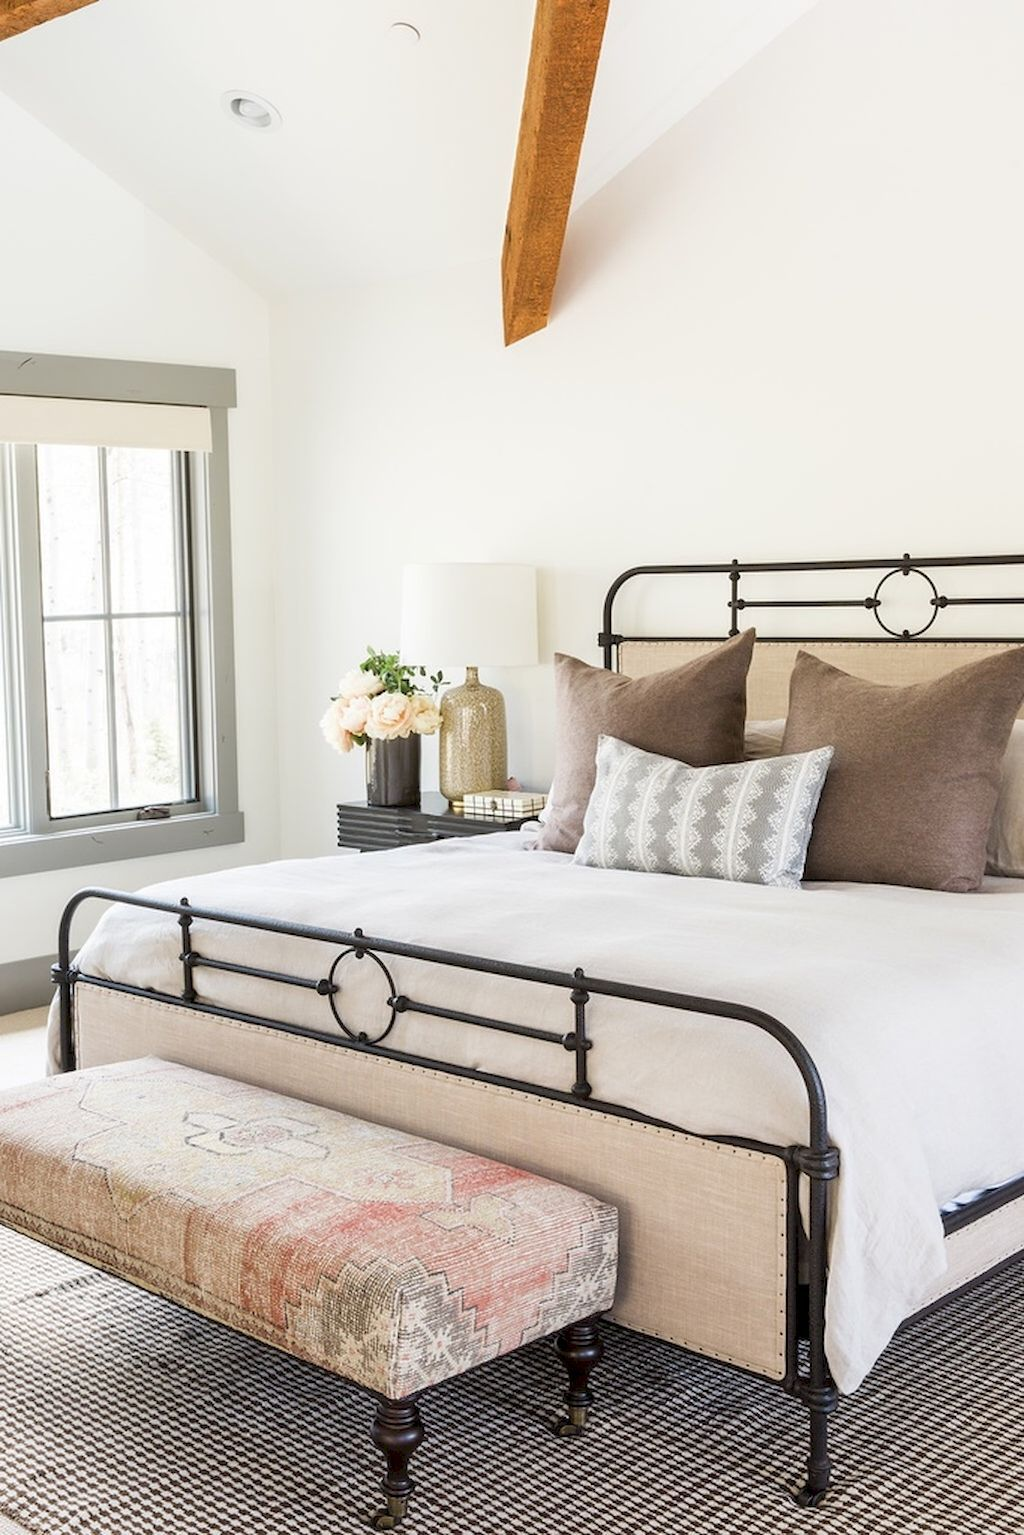 60 Eclectic Bedroom Decorating Ideas for Apartment | Flats, Bedrooms on eclectic den decorating ideas, eclectic master bathroom, eclectic backyard decorating ideas, superhero boys bedroom decorating ideas, eclectic interior decorating ideas, eclectic bedroom furniture, eclectic kitchen decorating ideas, eclectic teen bedroom,